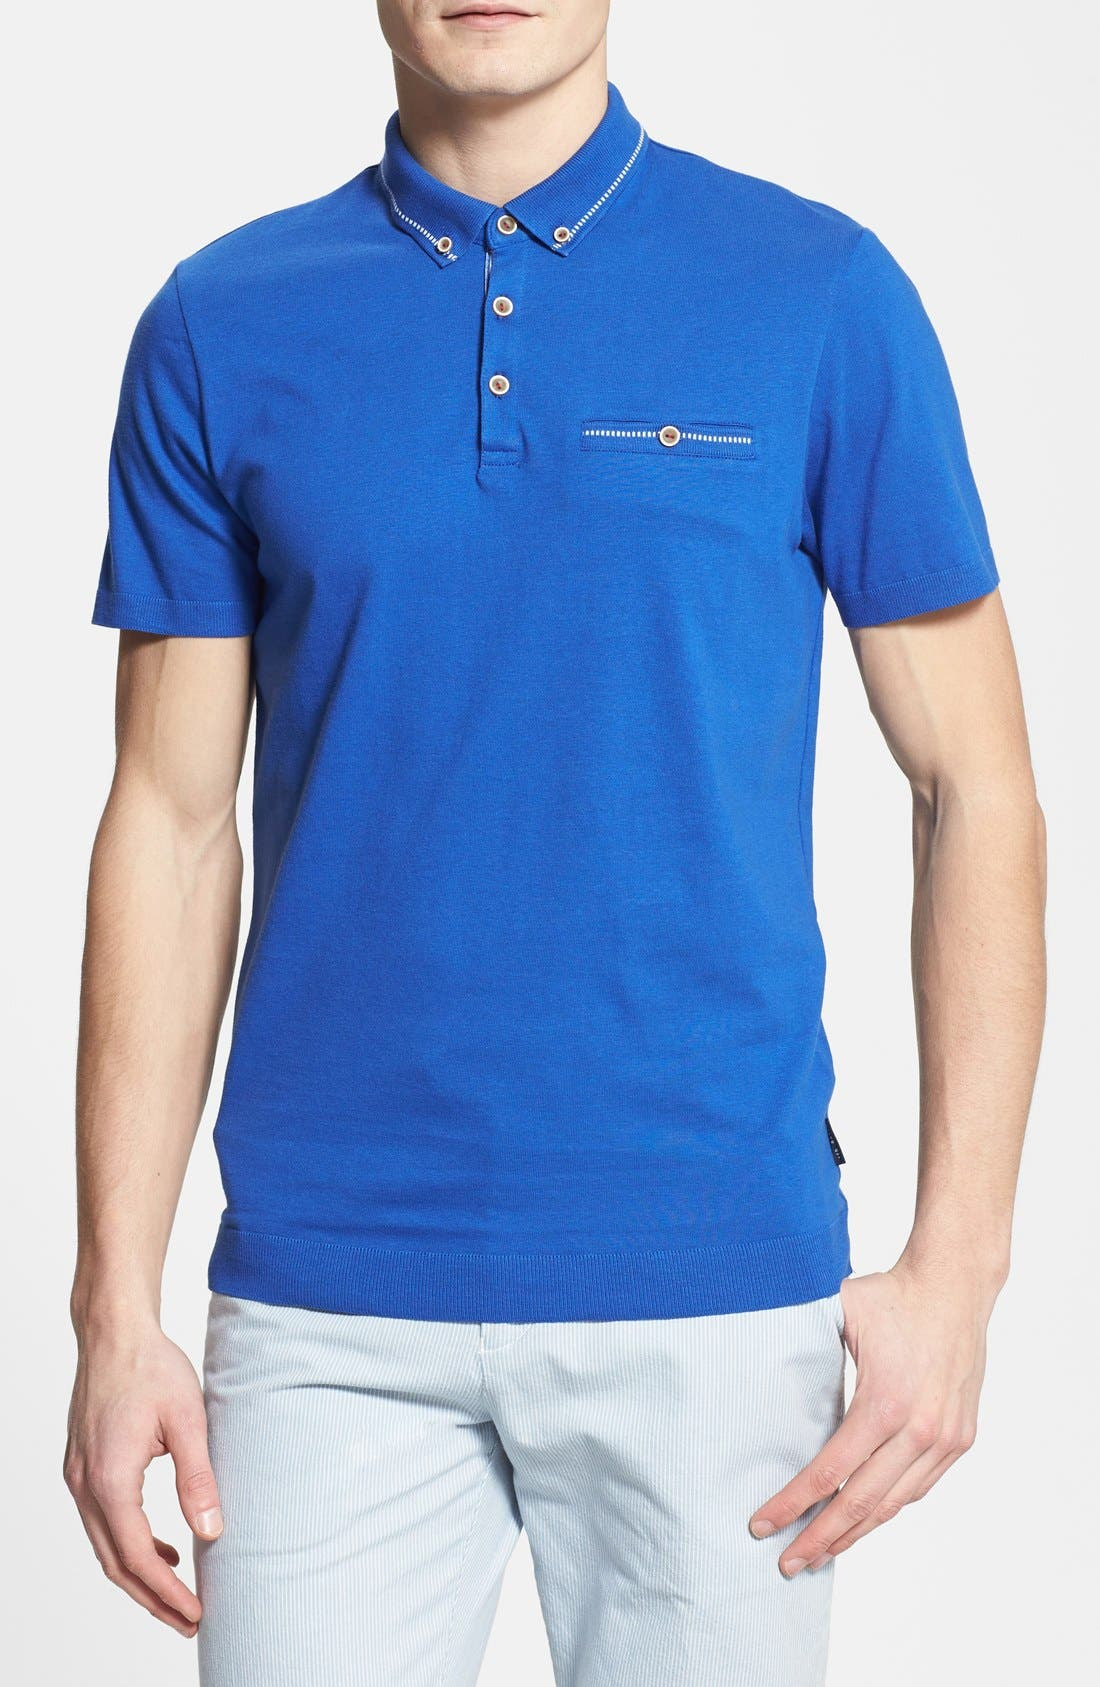 Alternate Image 1 Selected - Ted Baker London 'Rosbowl' Solid Knit Polo